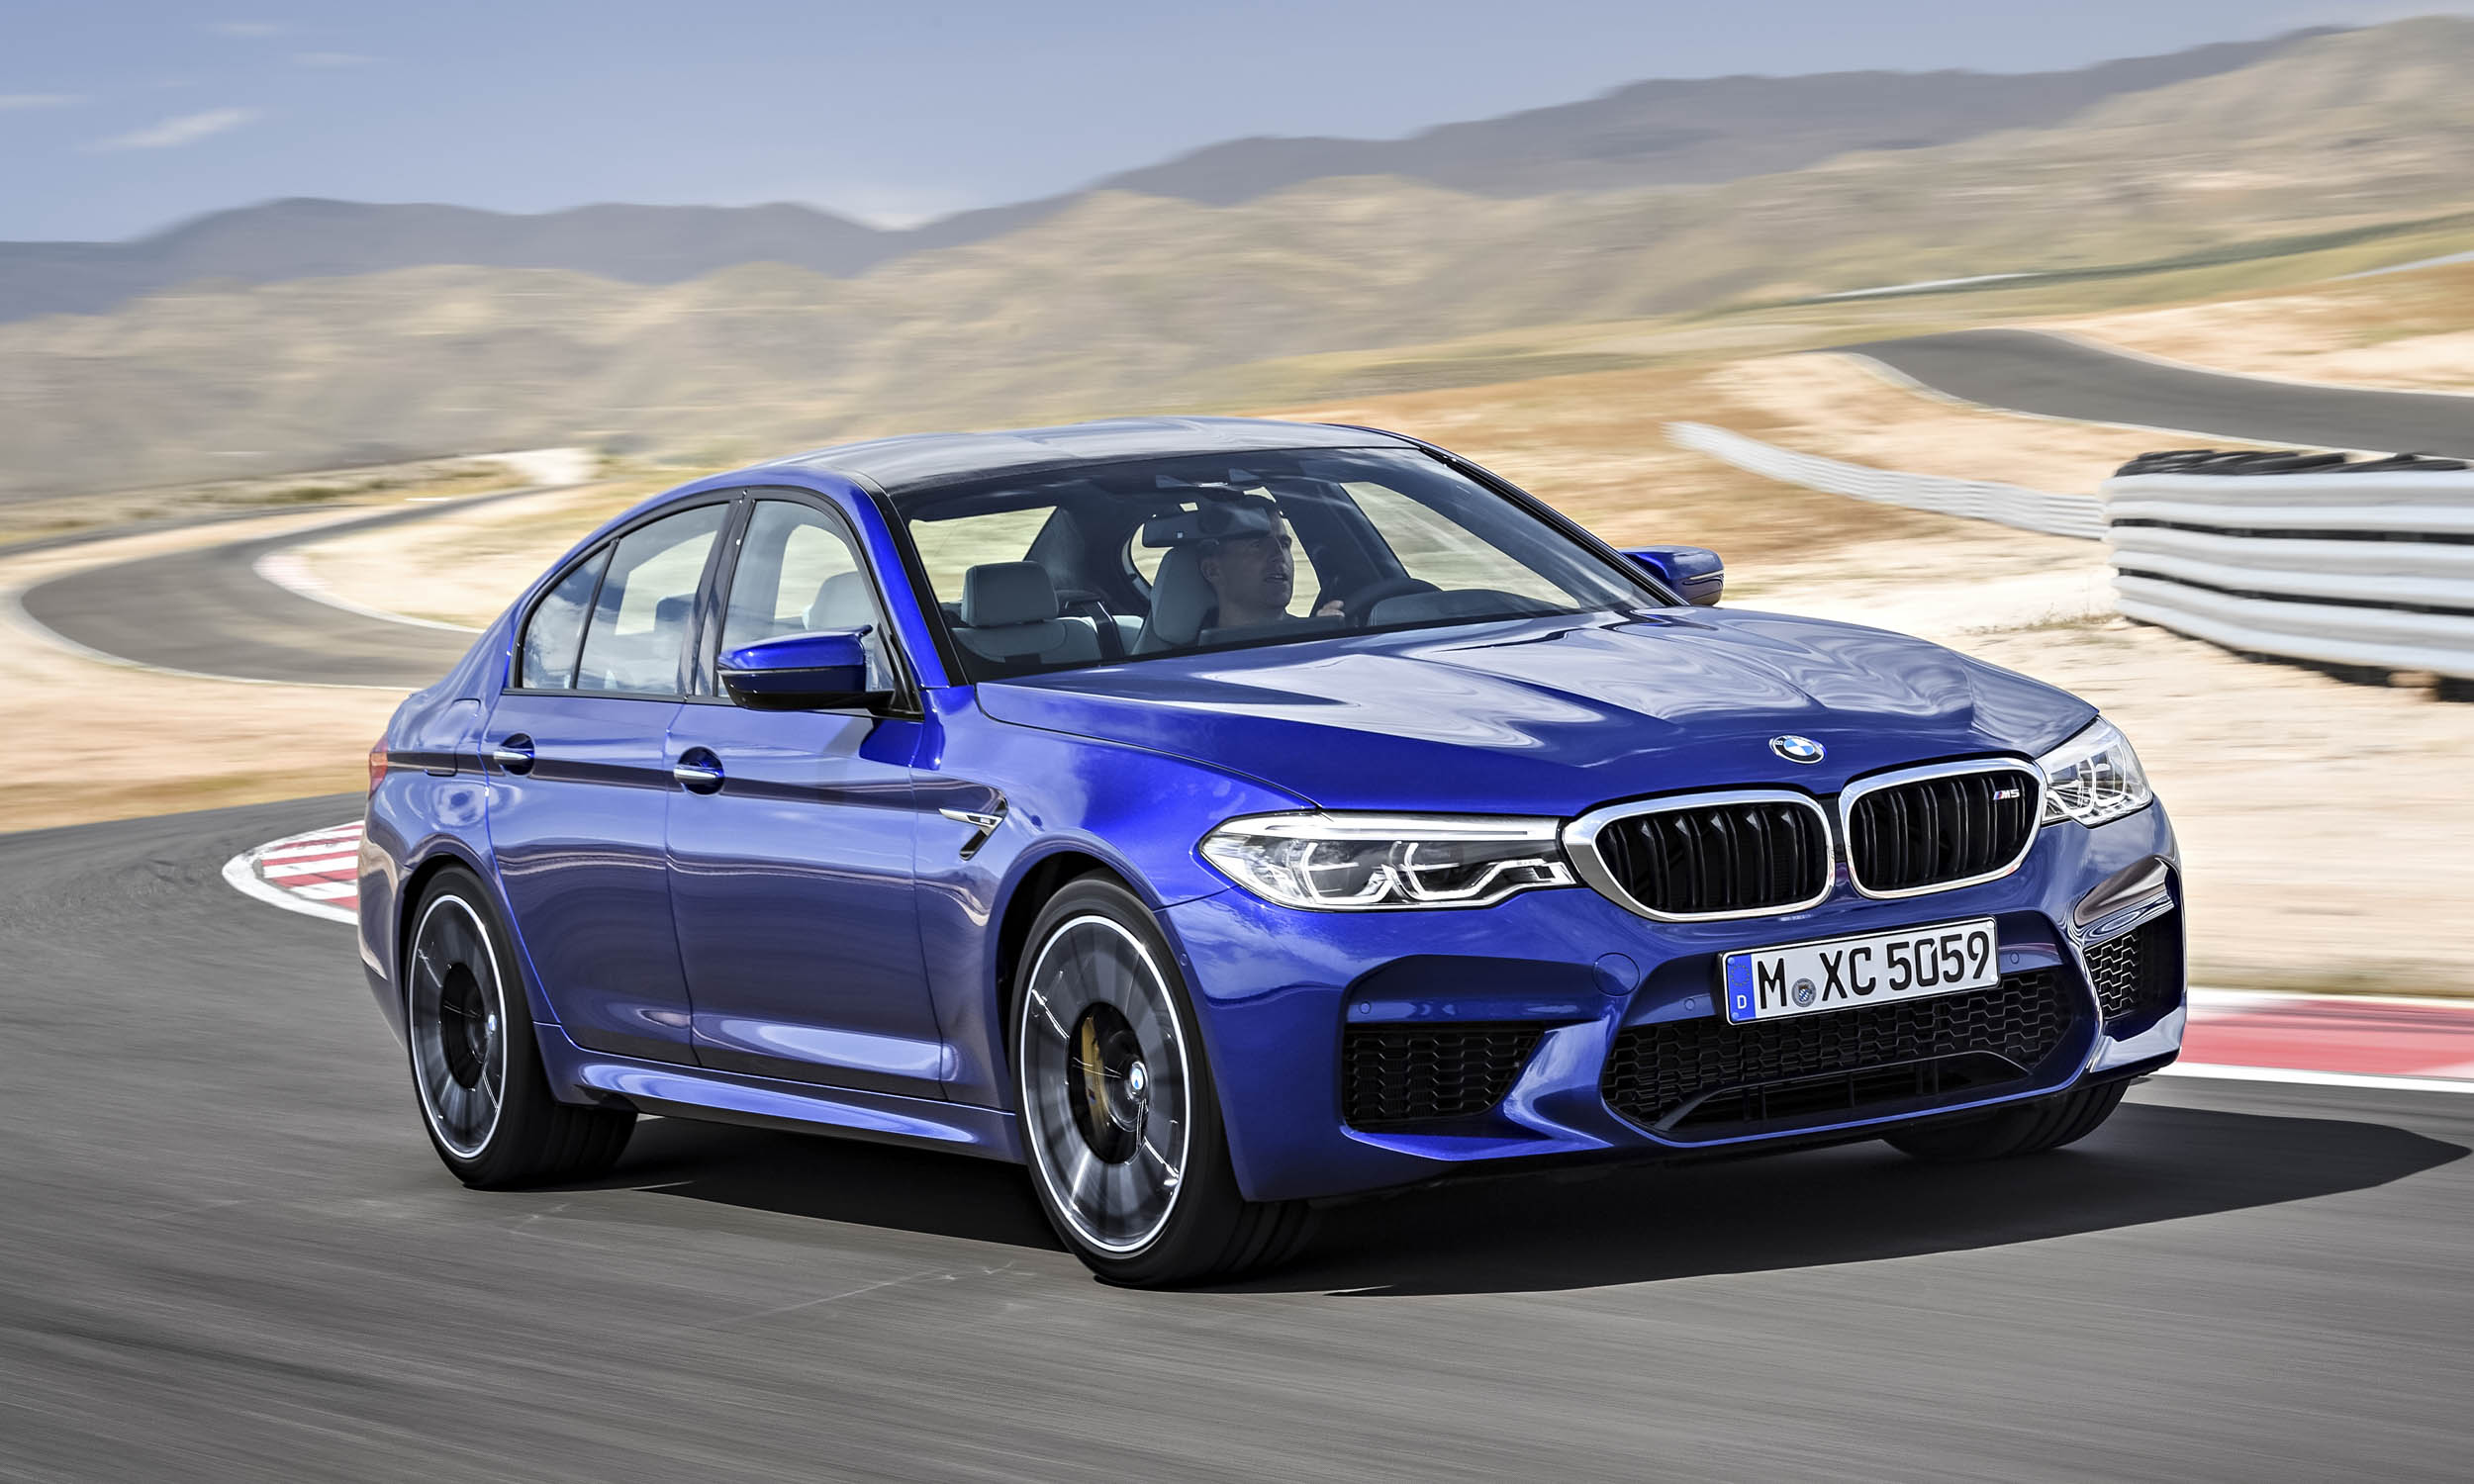 The 2018 Bmw M5 Is More Than 600 Horse And 553 Lb Ft Of Torque Generated By Its 4 Liter Twin Turbocharged V8 What Makes New Special